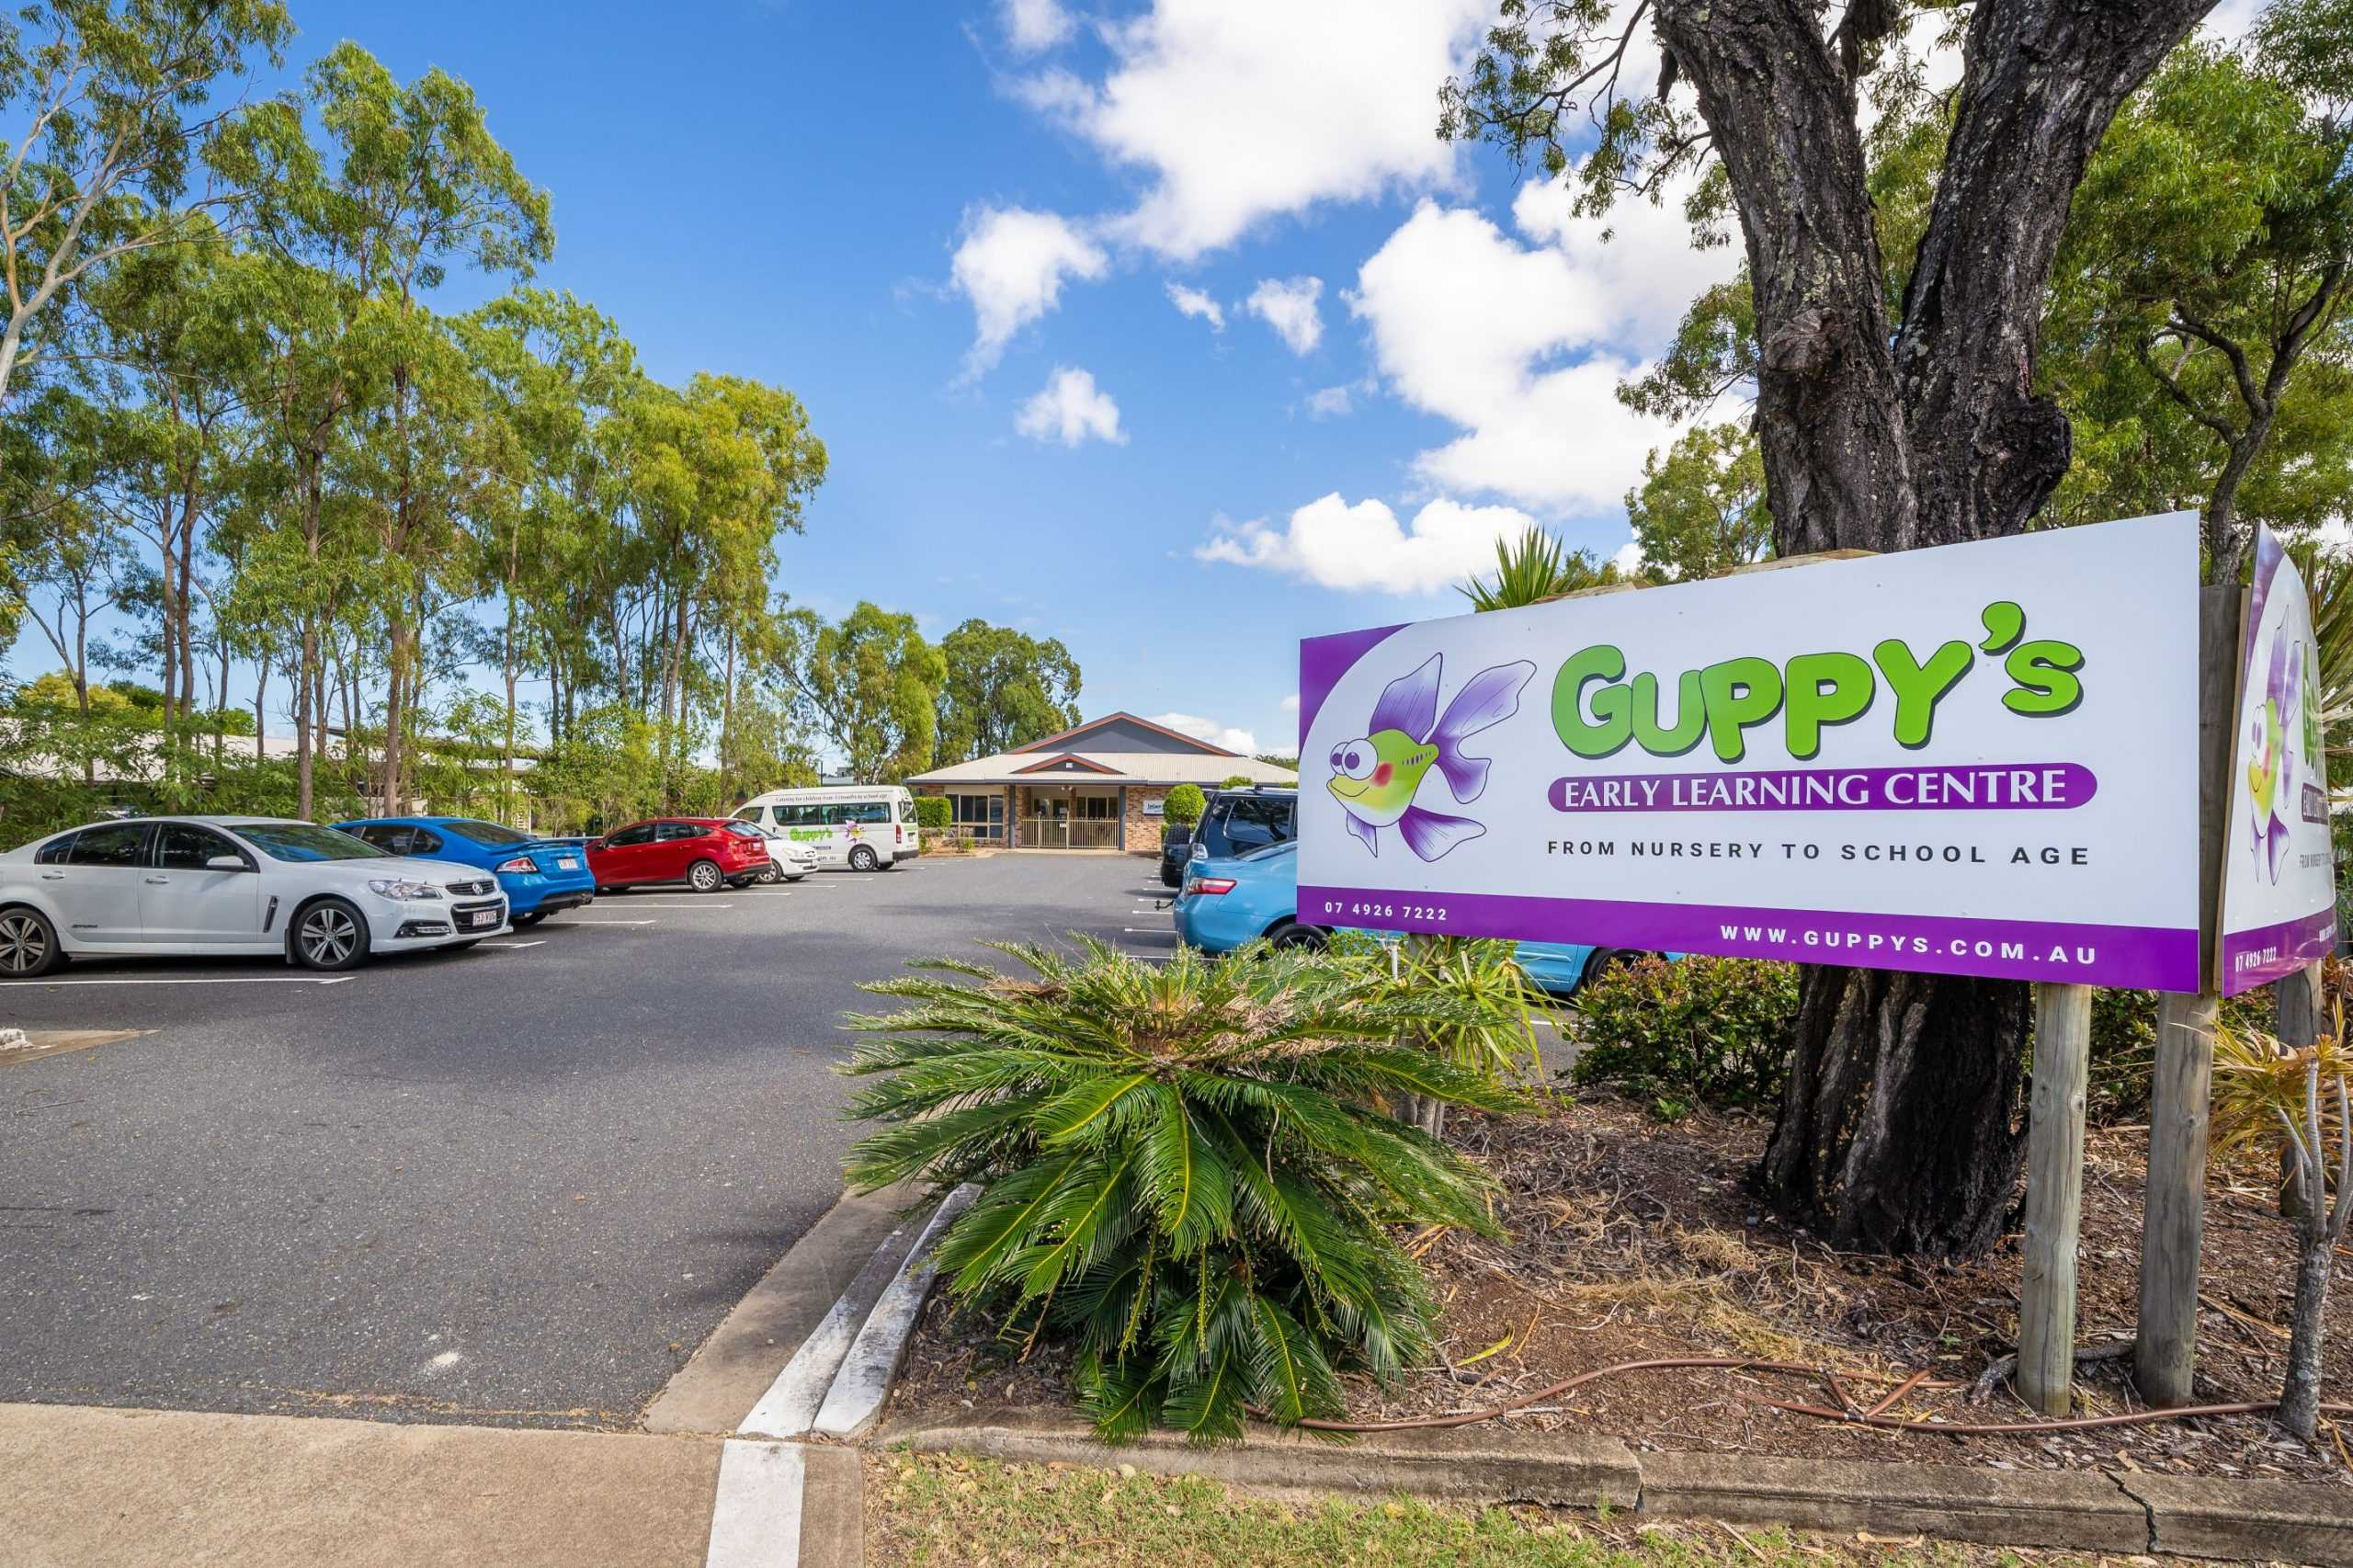 Rocky childcare centre sells for .3m at Melbourne auction